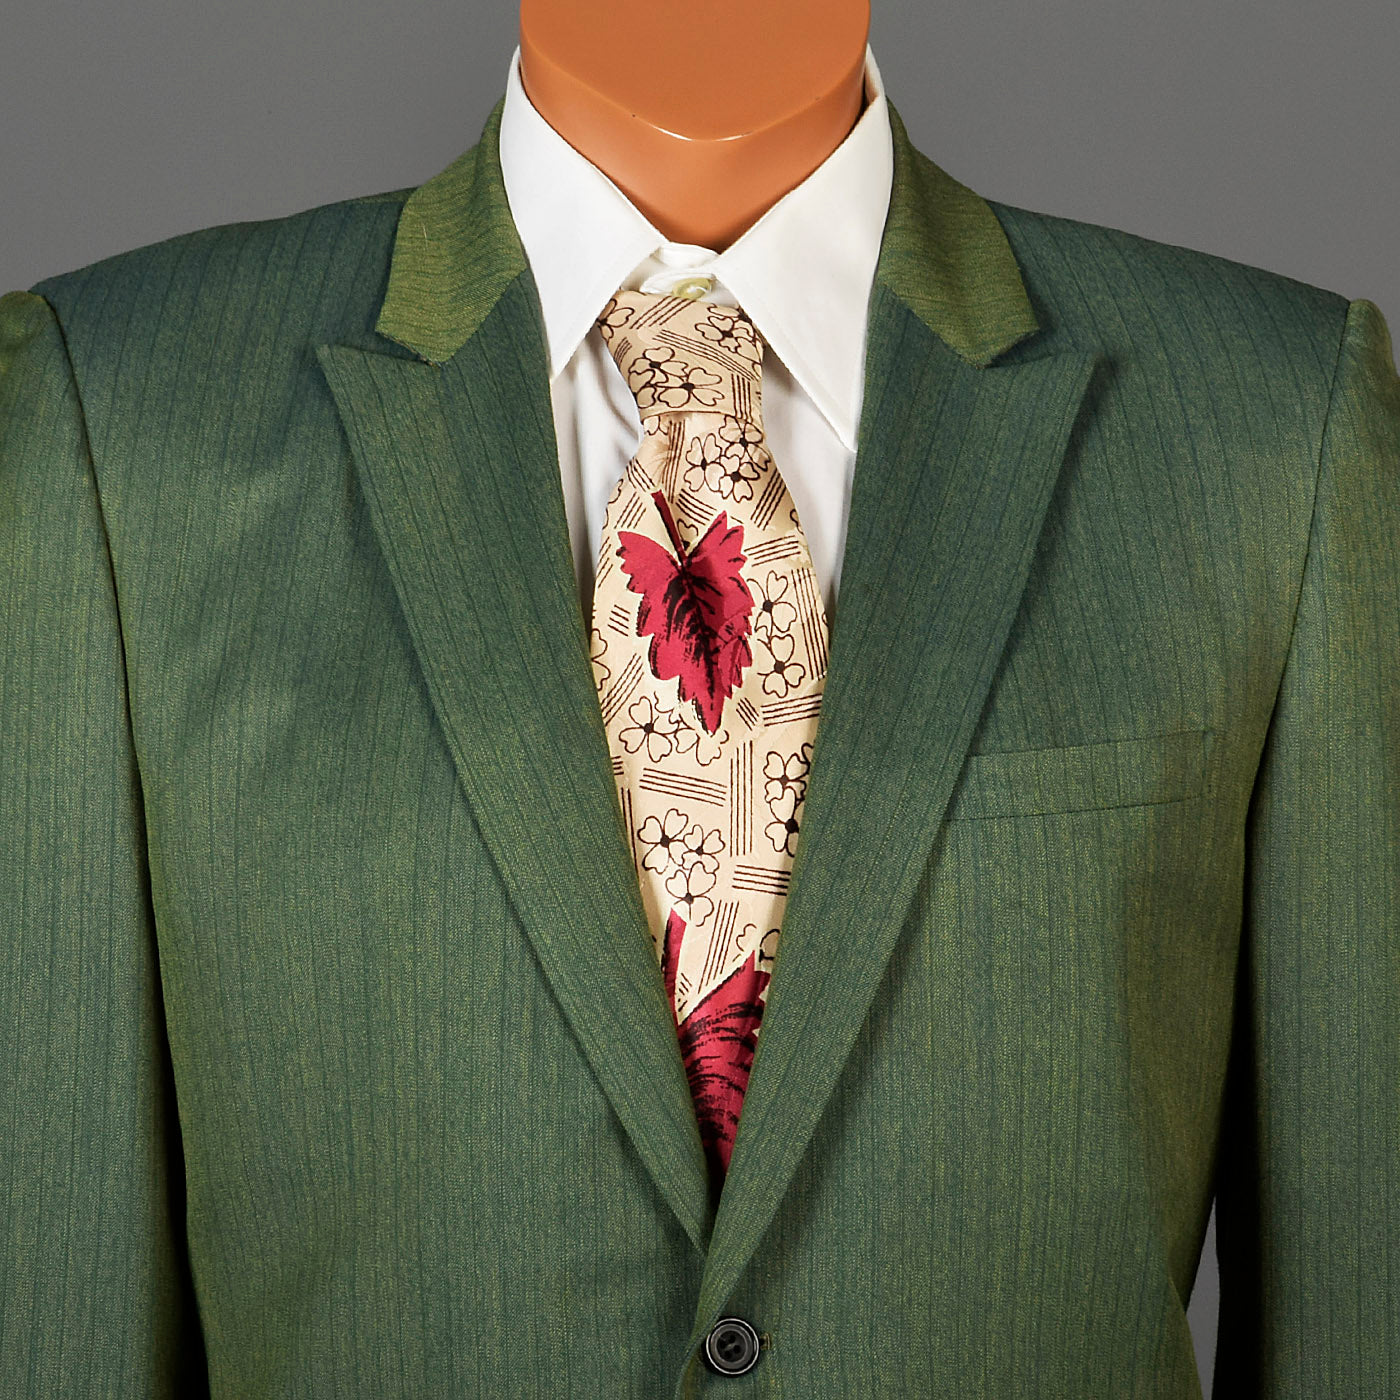 1960s Men's Emerald Green Two Piece Suit with Pinstripes